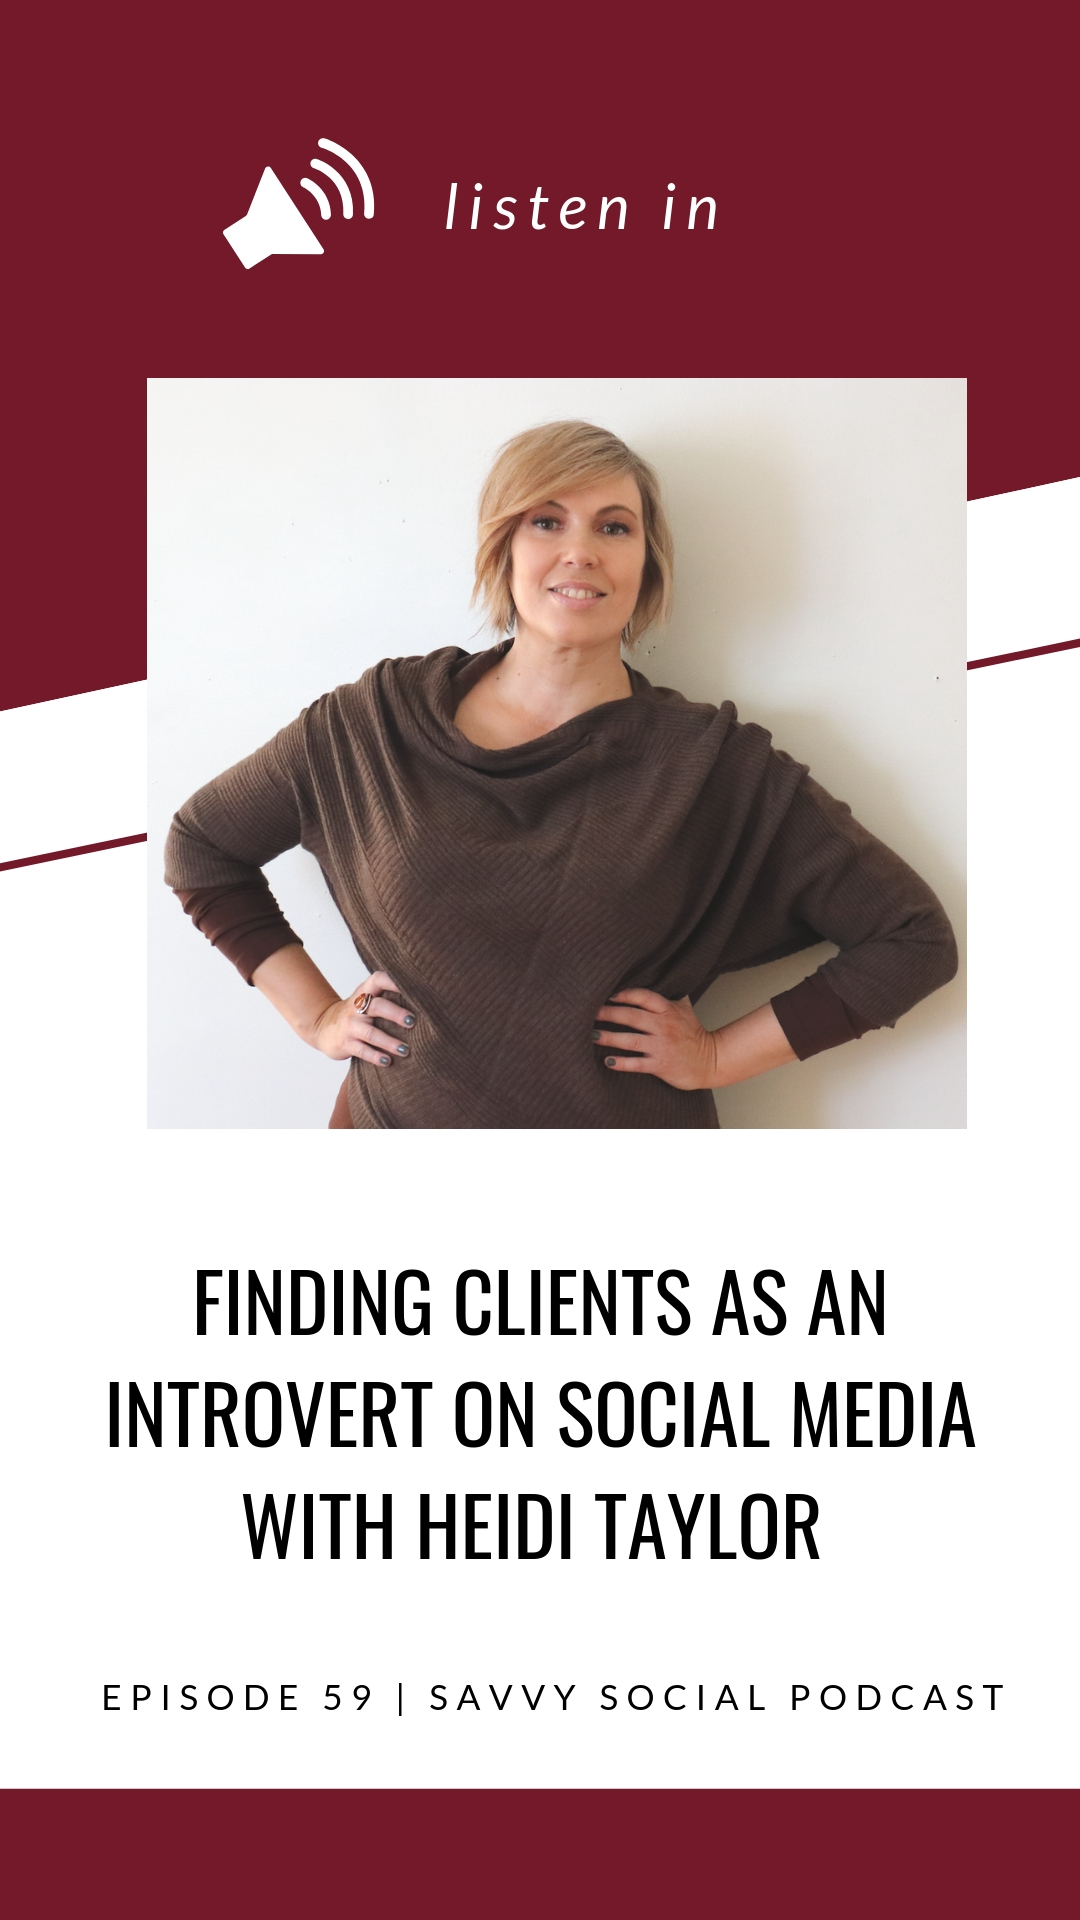 Raise your hand if you're an introvert! I'm actually a huge introvert so I know firsthand how difficult it can be to put yourself out there for the sake of connecting with others. Even if you're not an introvert, chances are you've had your own struggle with creating meaningful connections. Heidi Taylor explains how really knowing your client makes connecting easier and she sheds some light on how to find your place in the online world!